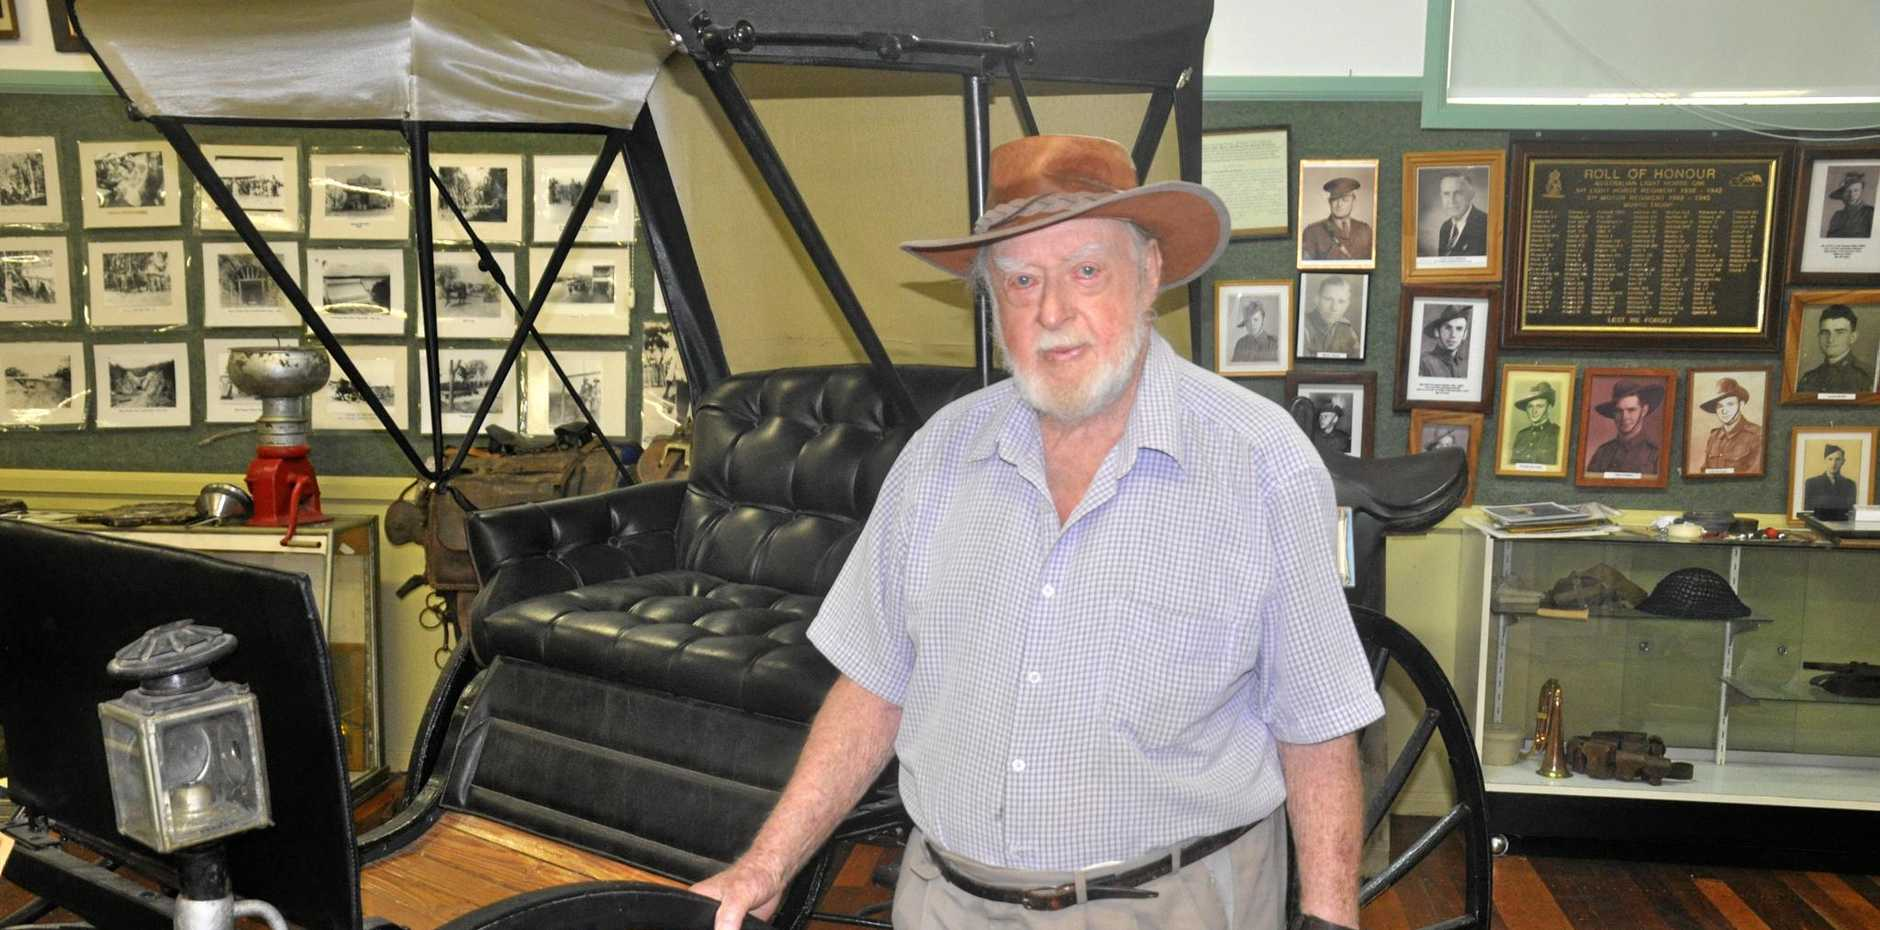 NOT LEAVING: Harold Ware founded the historical society in 1968.